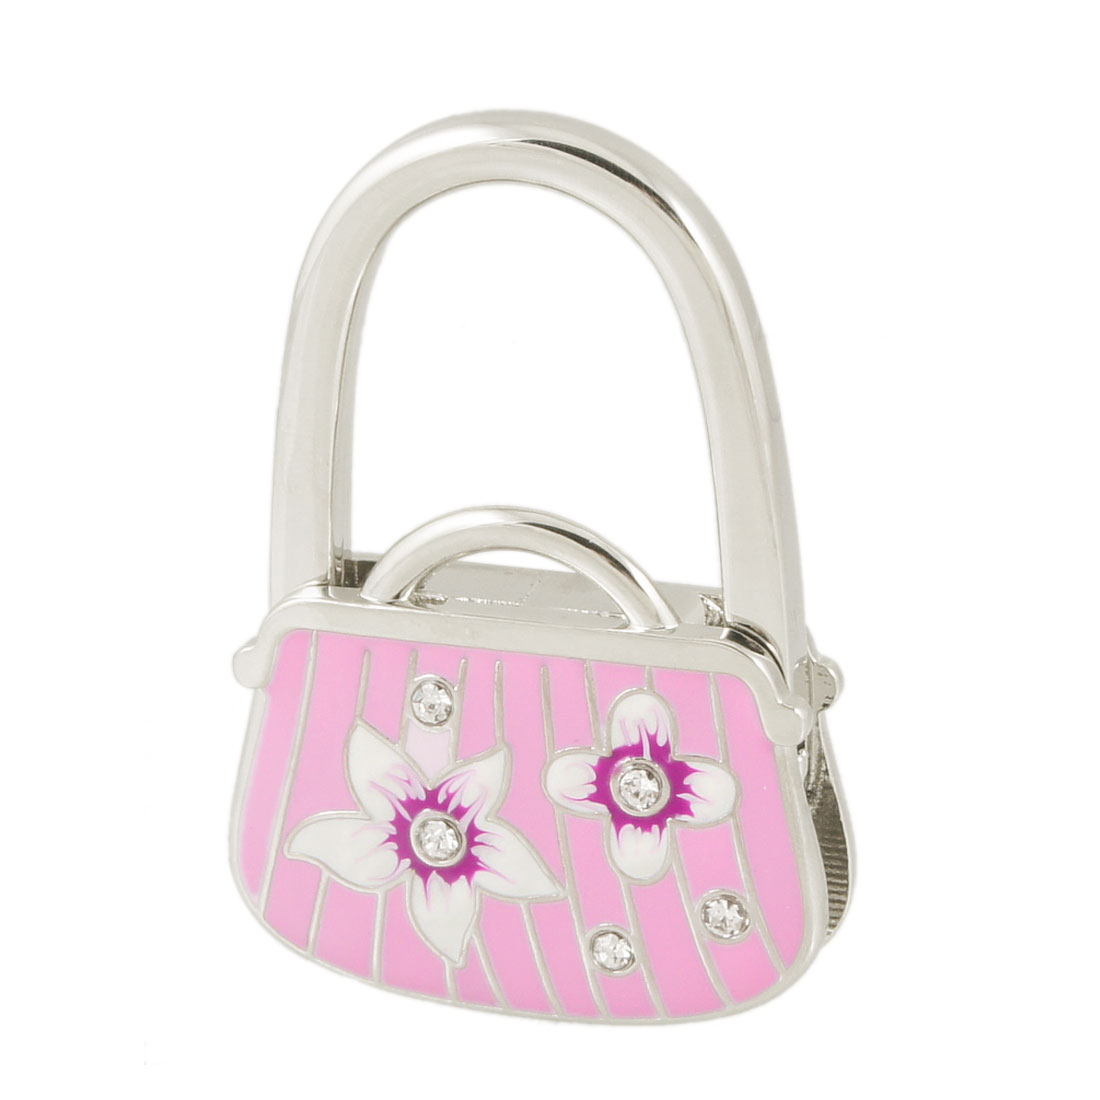 Floral Pattern Pink Silver Tone Bag Shaped Metal Folding Handbag Hook